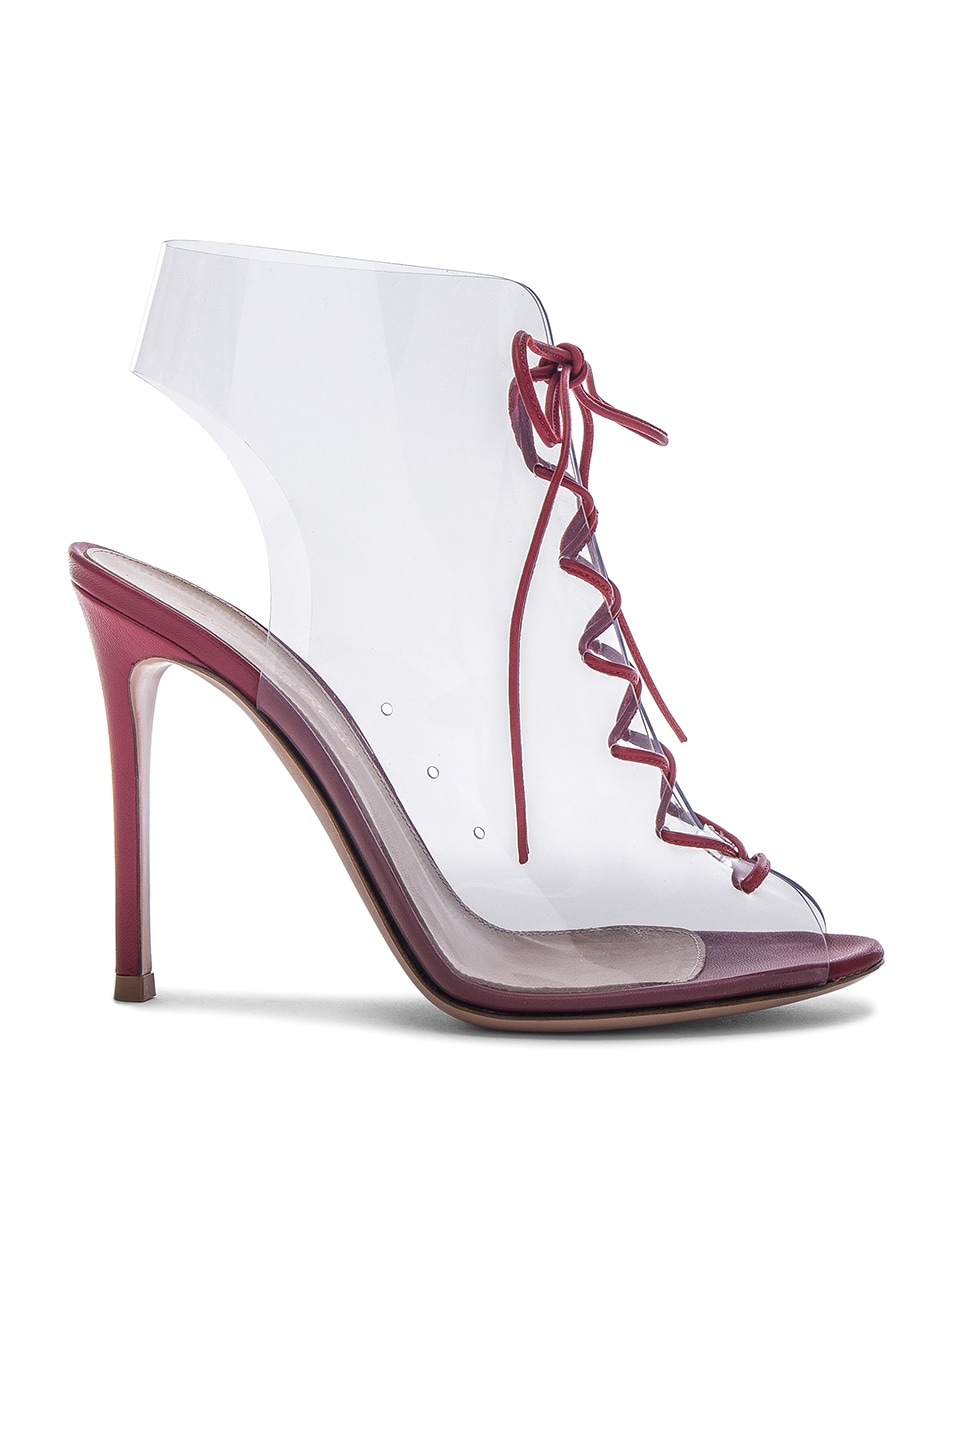 35fccec2c14 Image 1 of Gianvito Rossi Leather   Plexi Helmut Lace Up Booties in Tabasco  Red